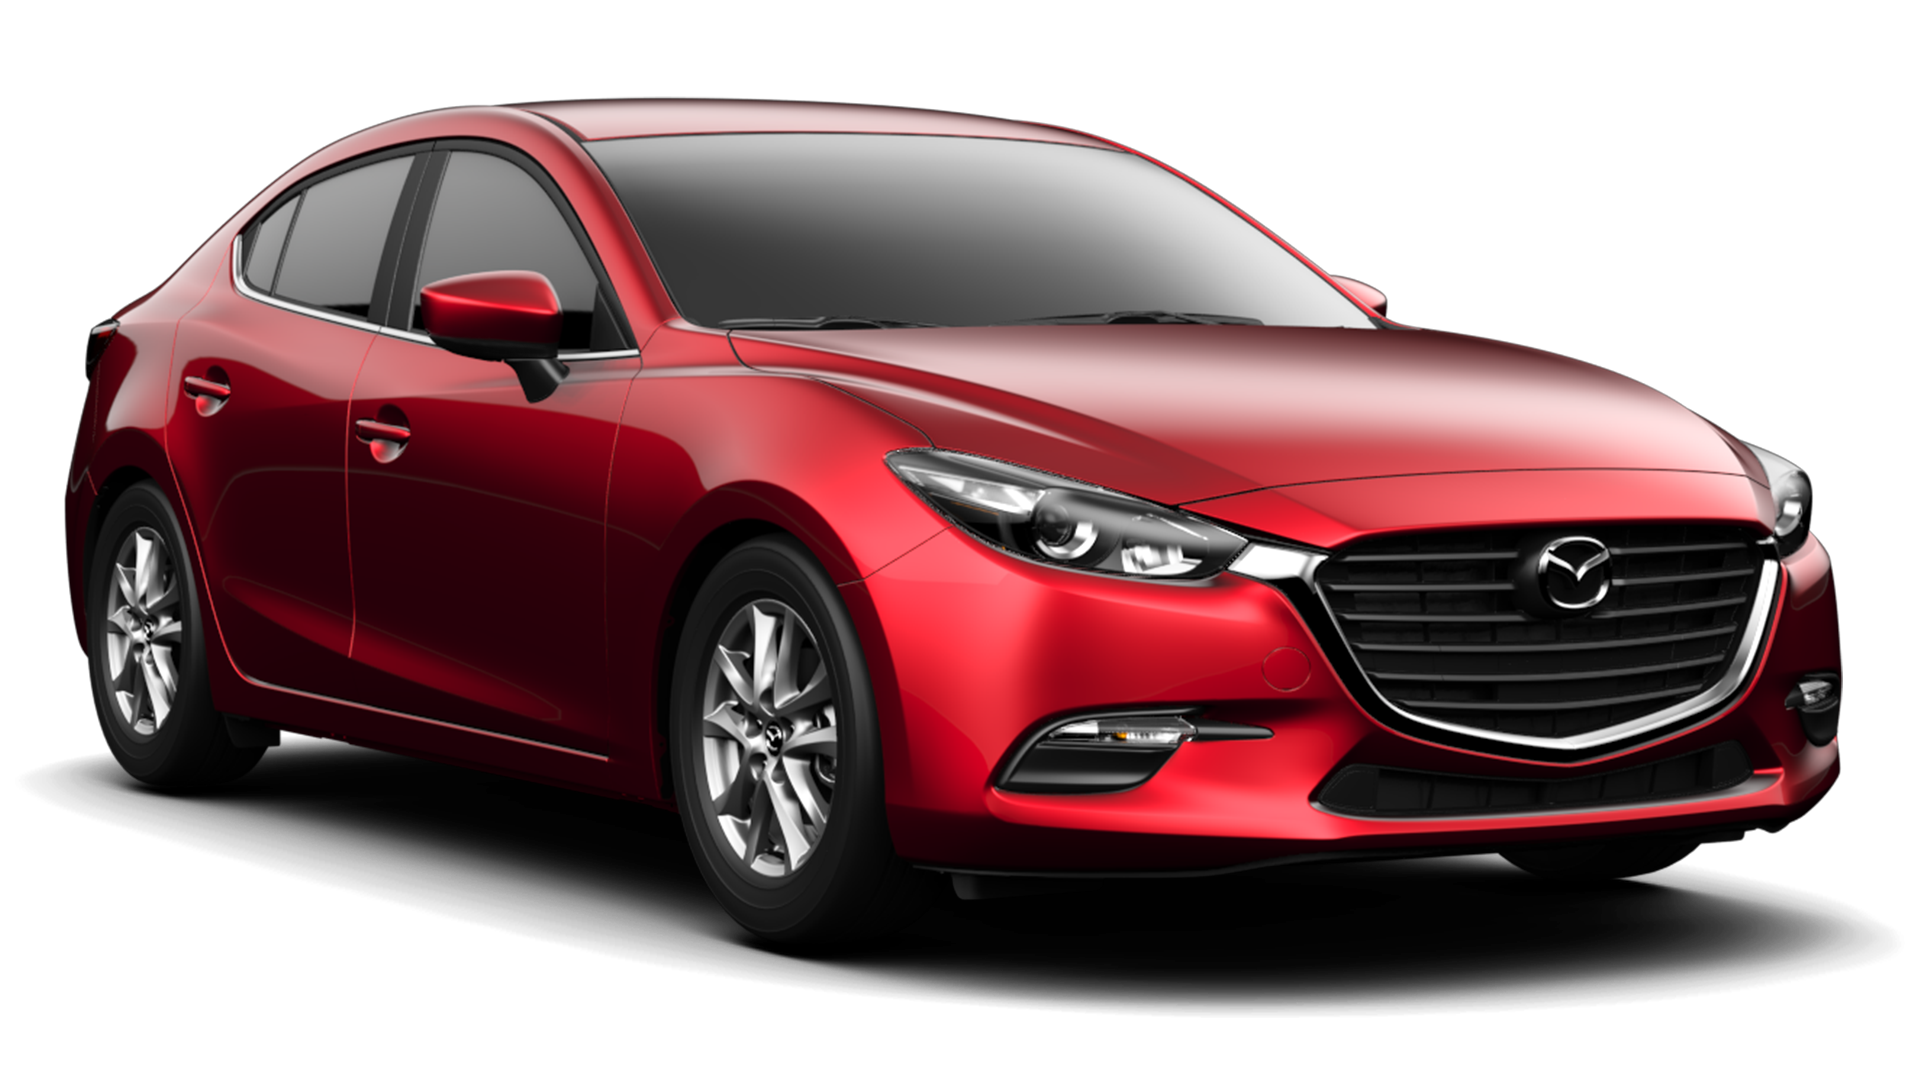 2017 mazda3 4 door compact sedan mazda canada. Black Bedroom Furniture Sets. Home Design Ideas